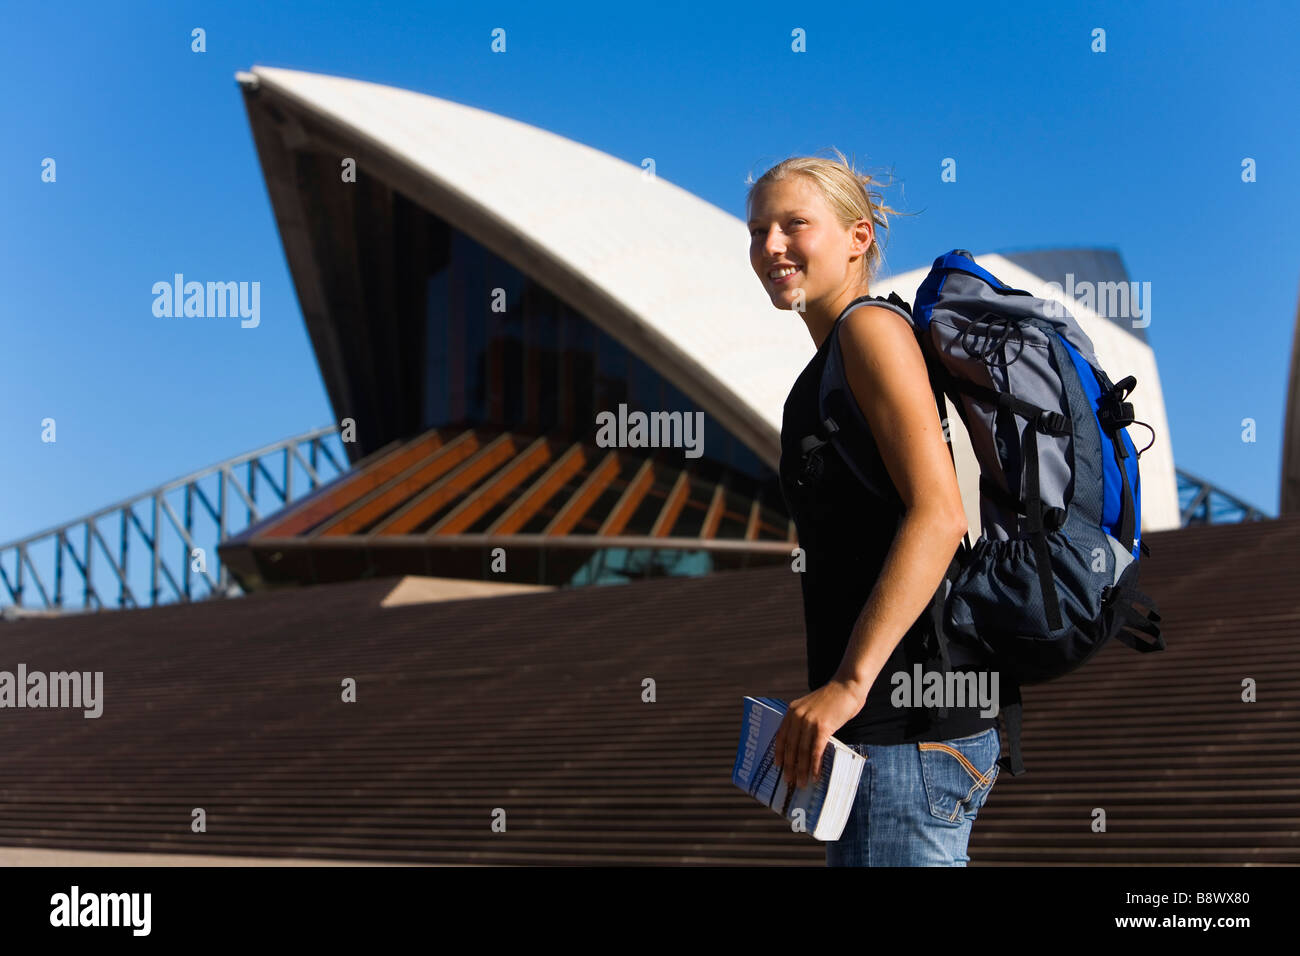 Young backpacker with guide book standing in front of the Sydney Opera House, Sydney, New South Wales, AUSTRALIA. - Stock Image